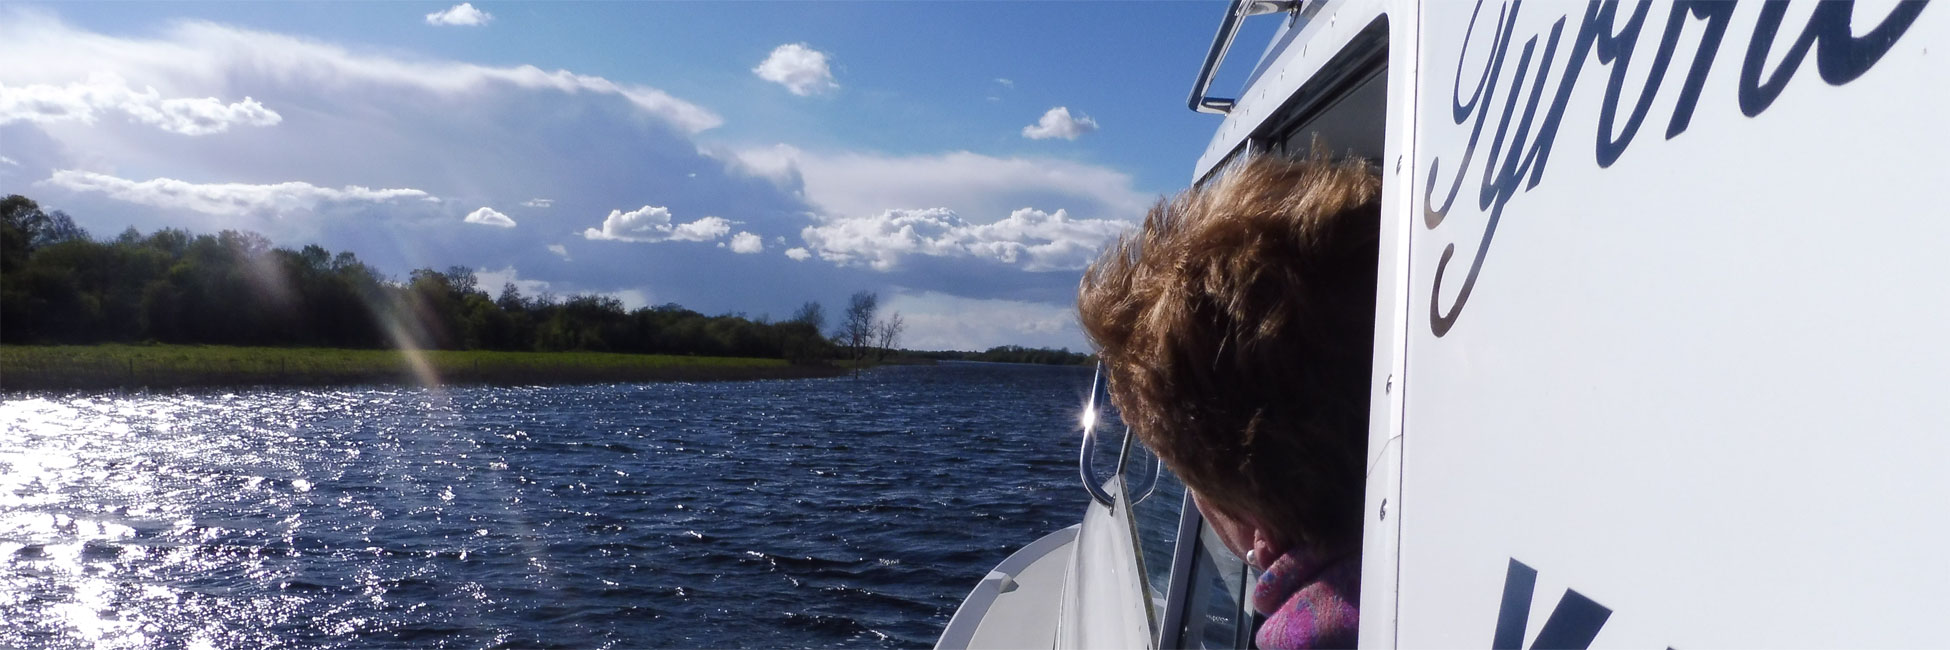 Compare Shannon River Boat Hire Prices